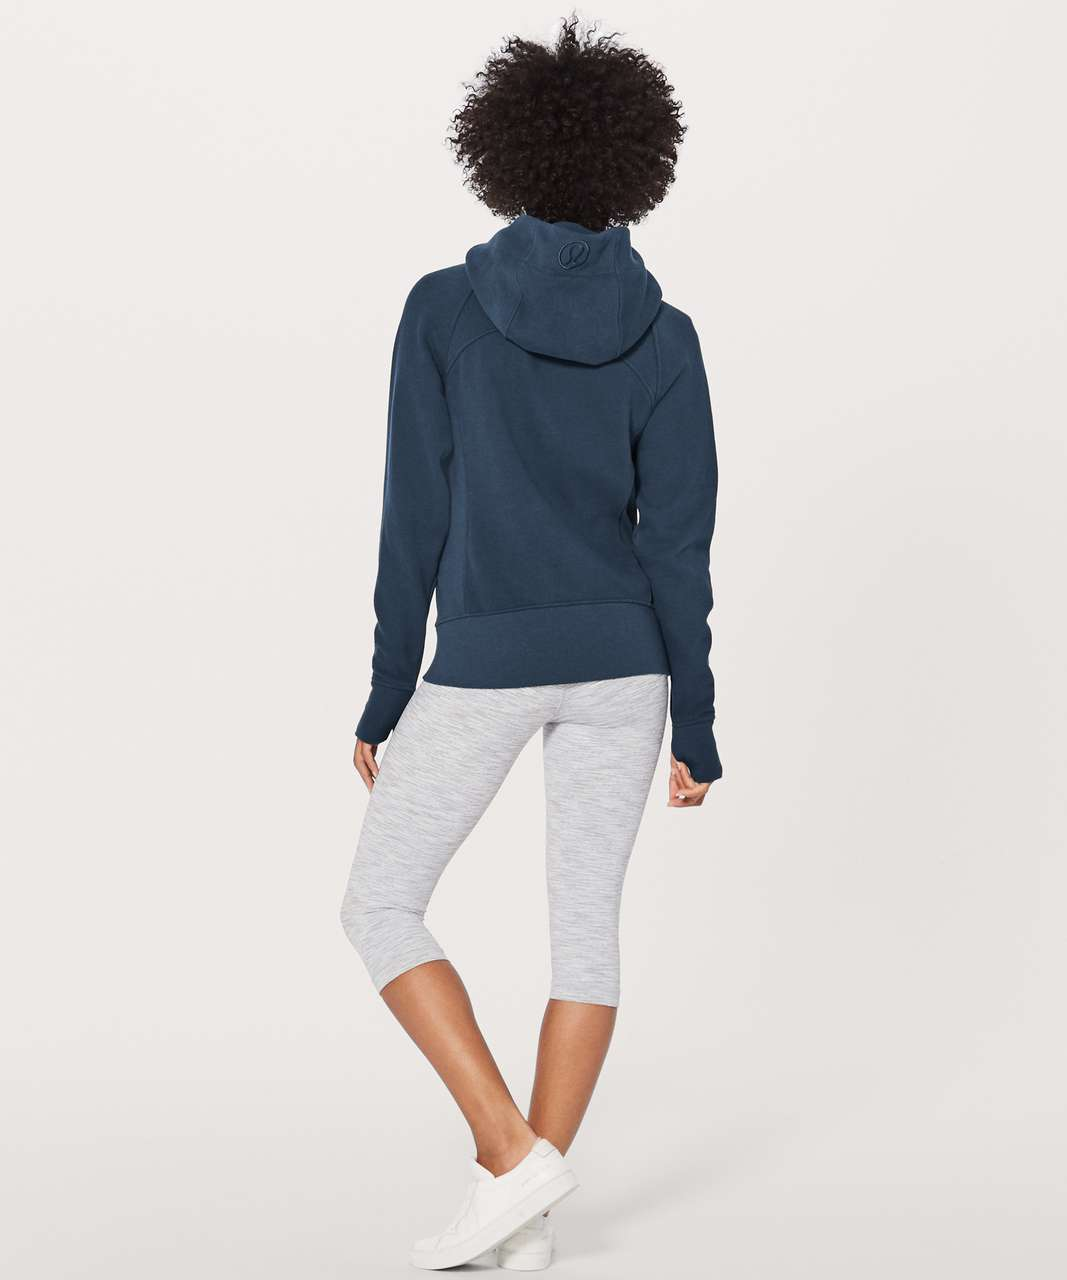 Lululemon Scuba Hoodie *Light Cotton Fleece - Mach Blue